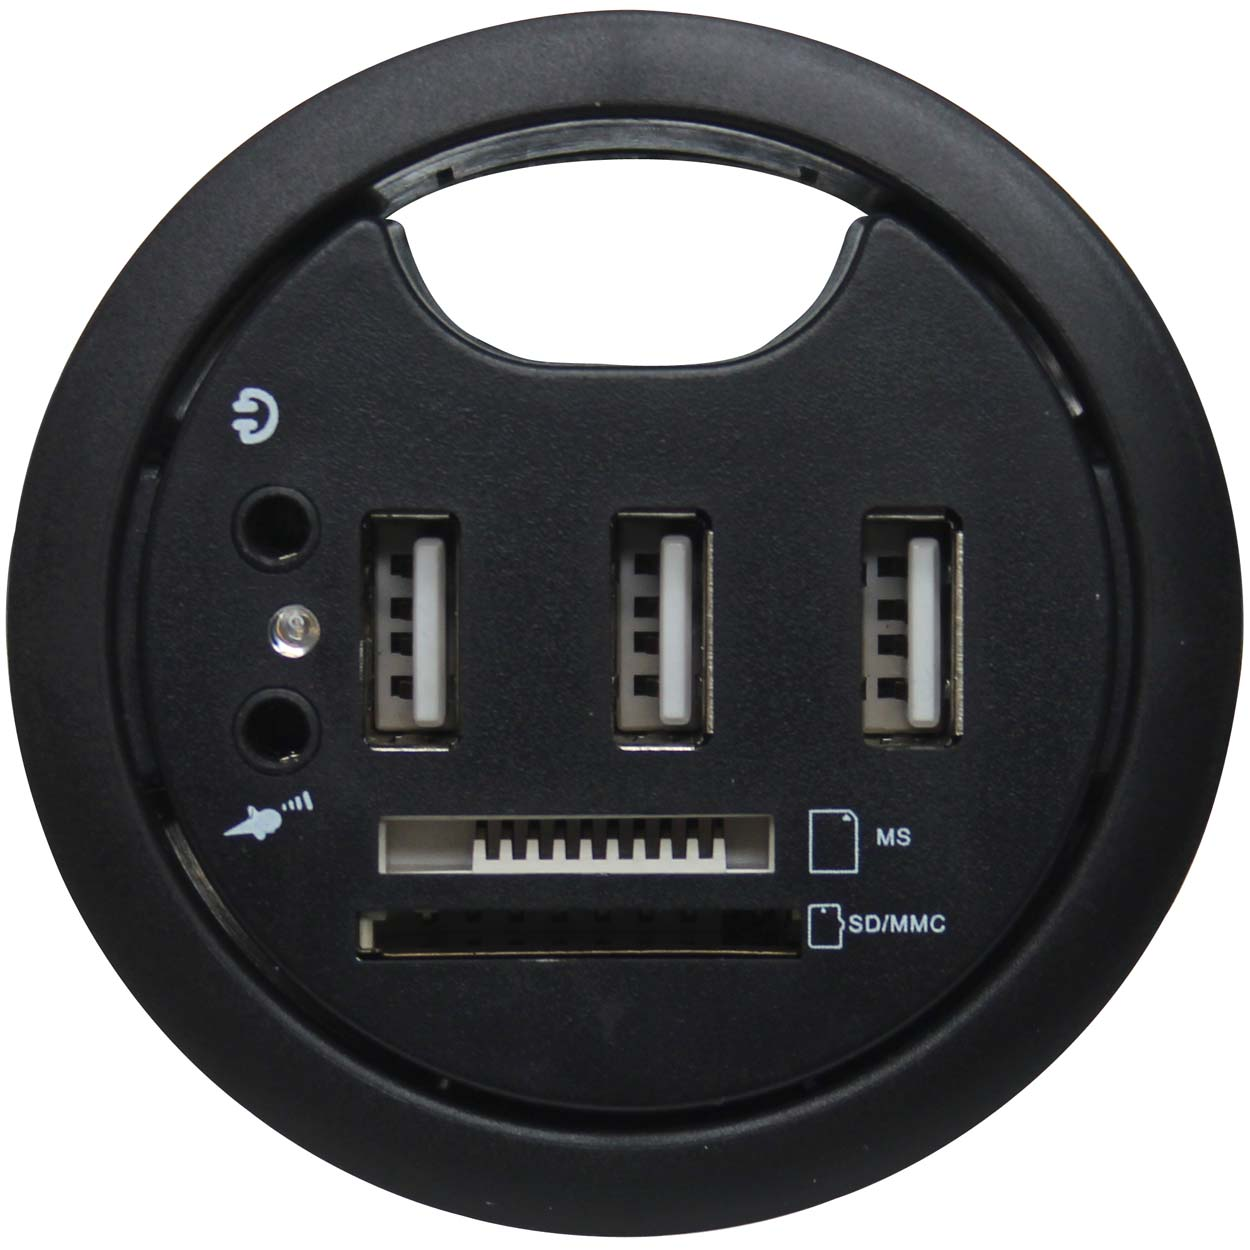 Usb Desk Grommet With 3 2 0 Multi Card Reader And Headphone